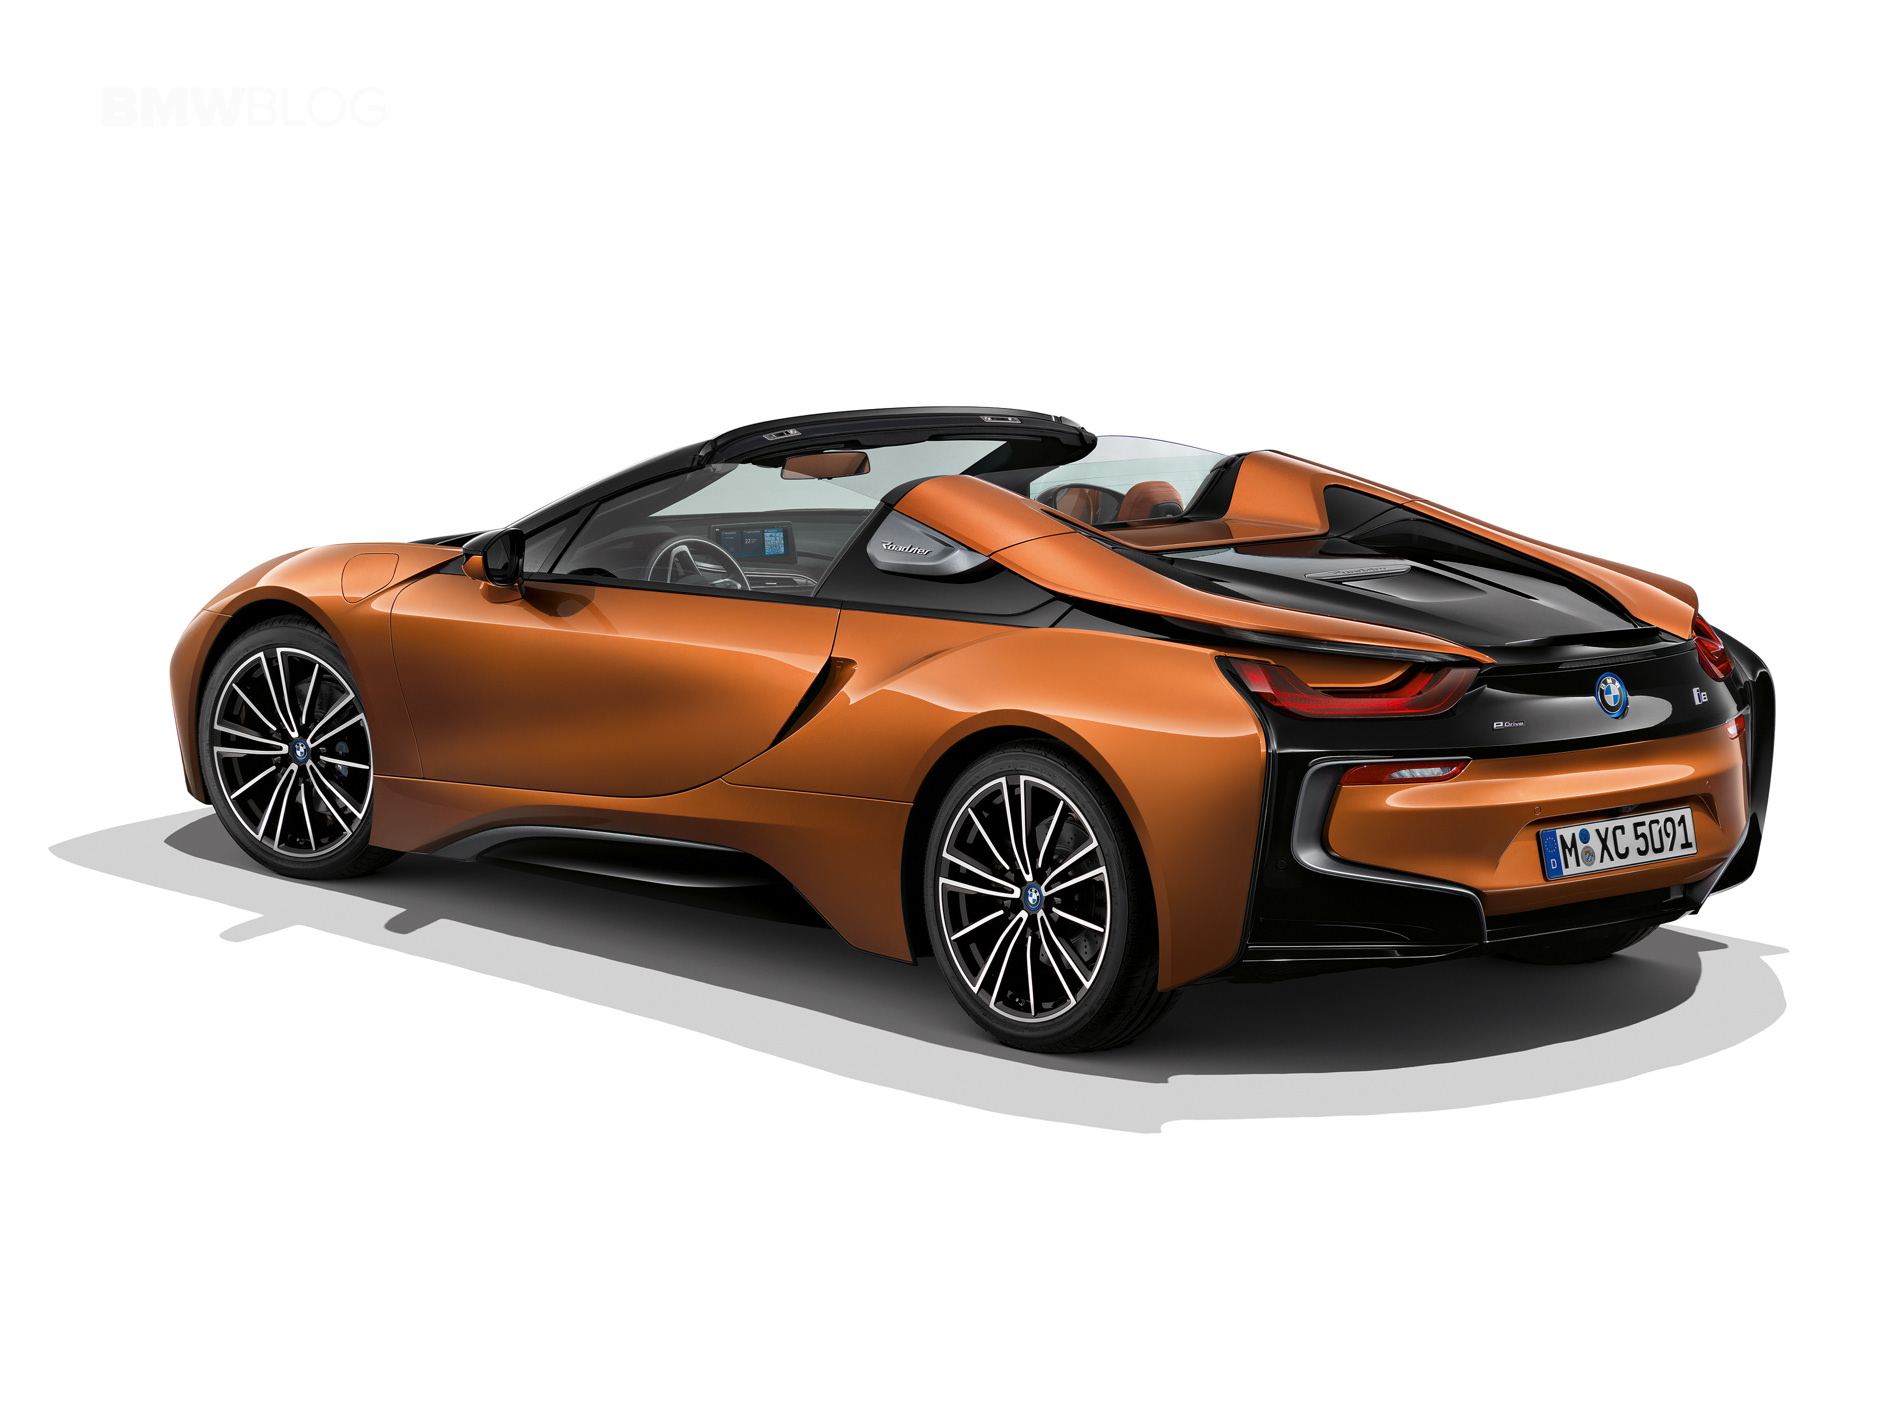 Aerodynamics Package For The Bmw I8 Roadster Now Available